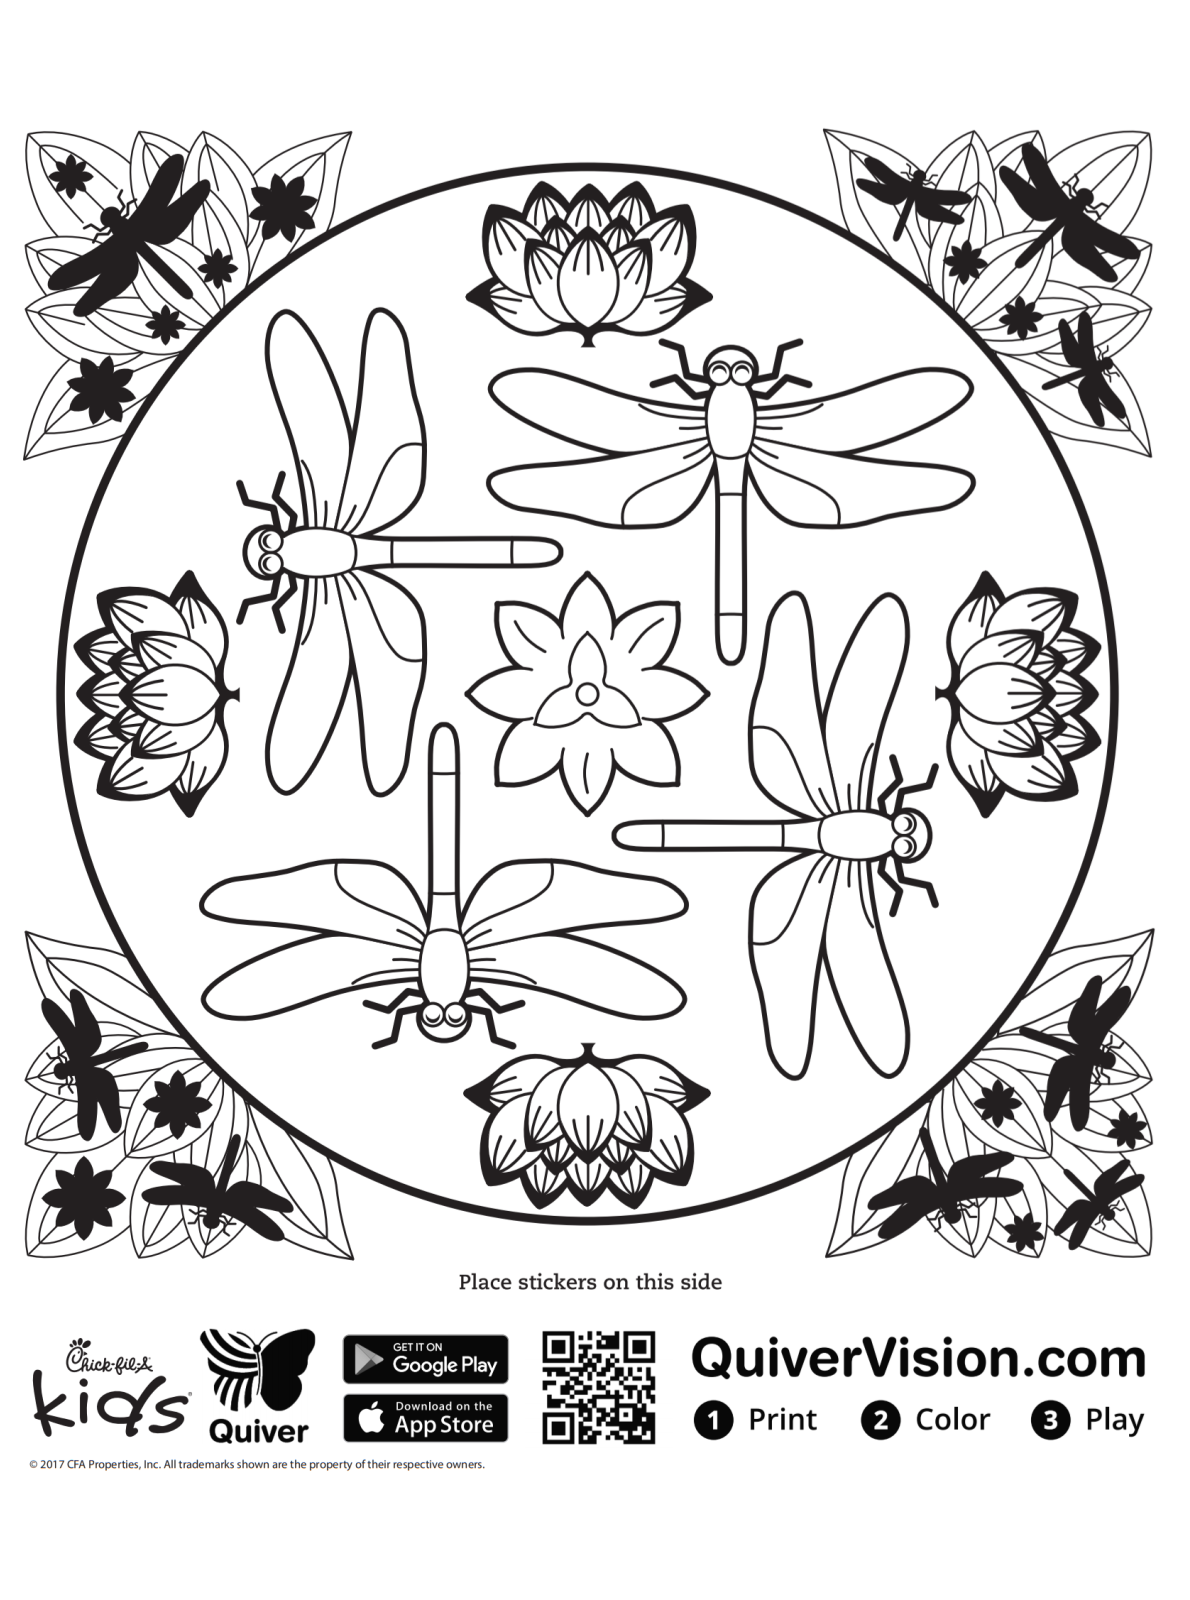 Kids n fun.com   Coloring page Quiver dragonfly